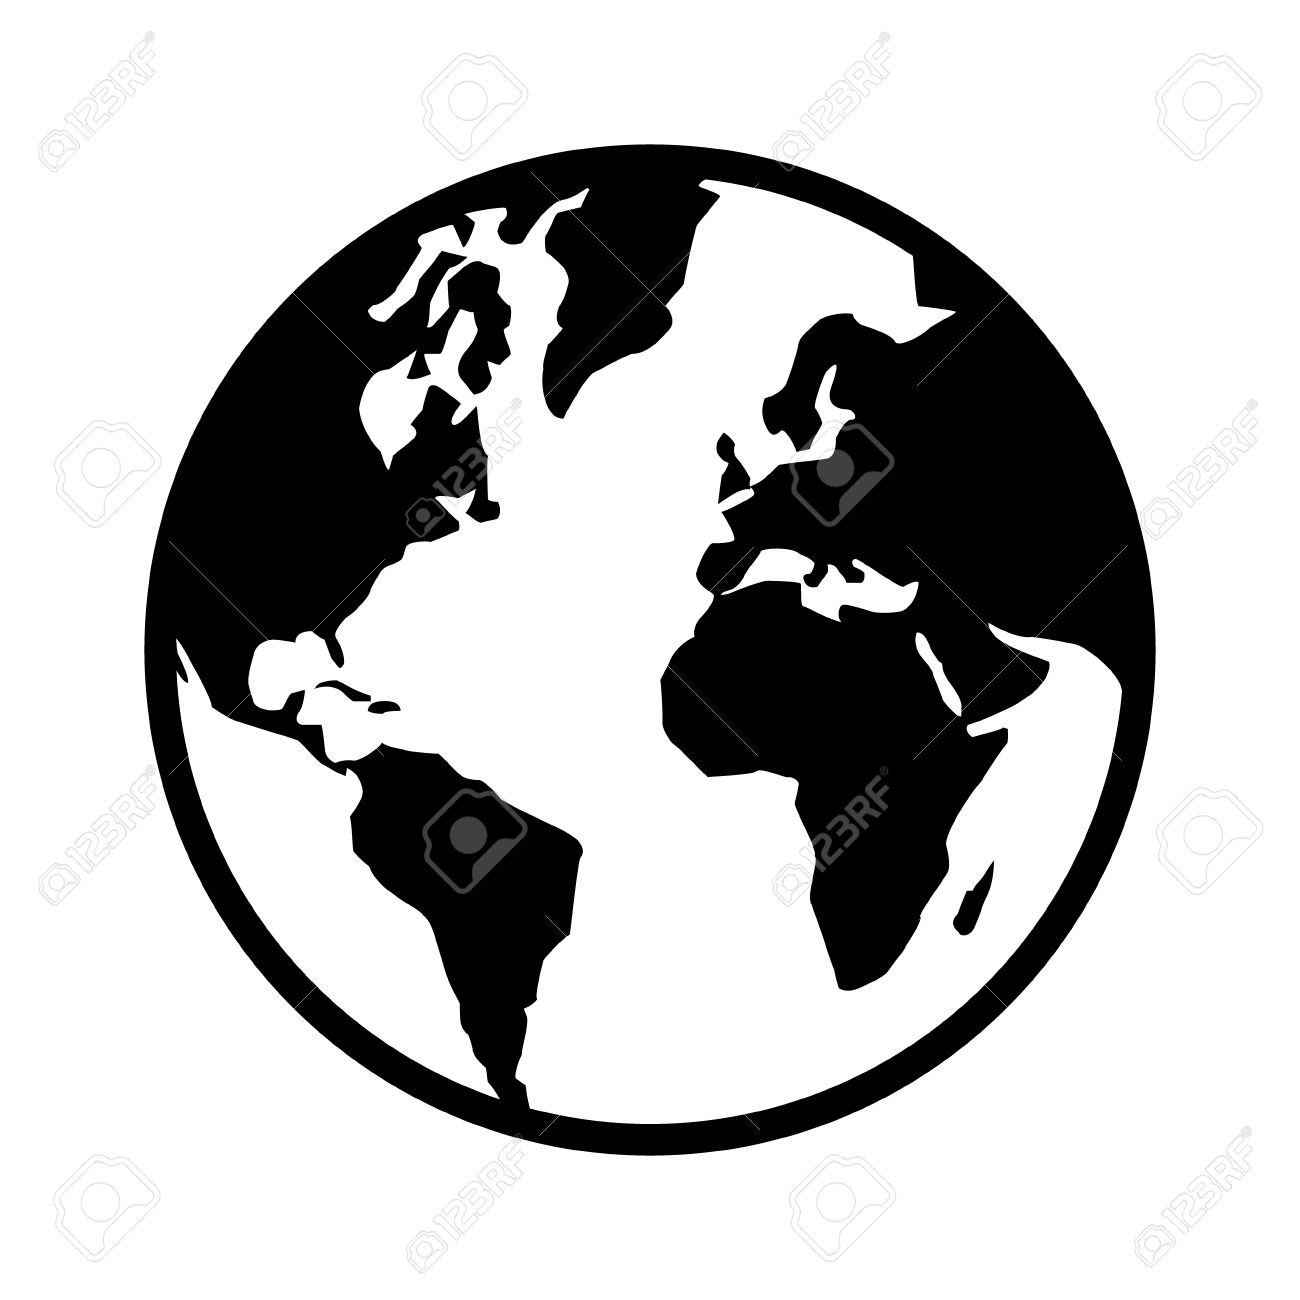 World map silhouette at getdrawings free for personal use 1300x1300 world map icon gumiabroncs Choice Image